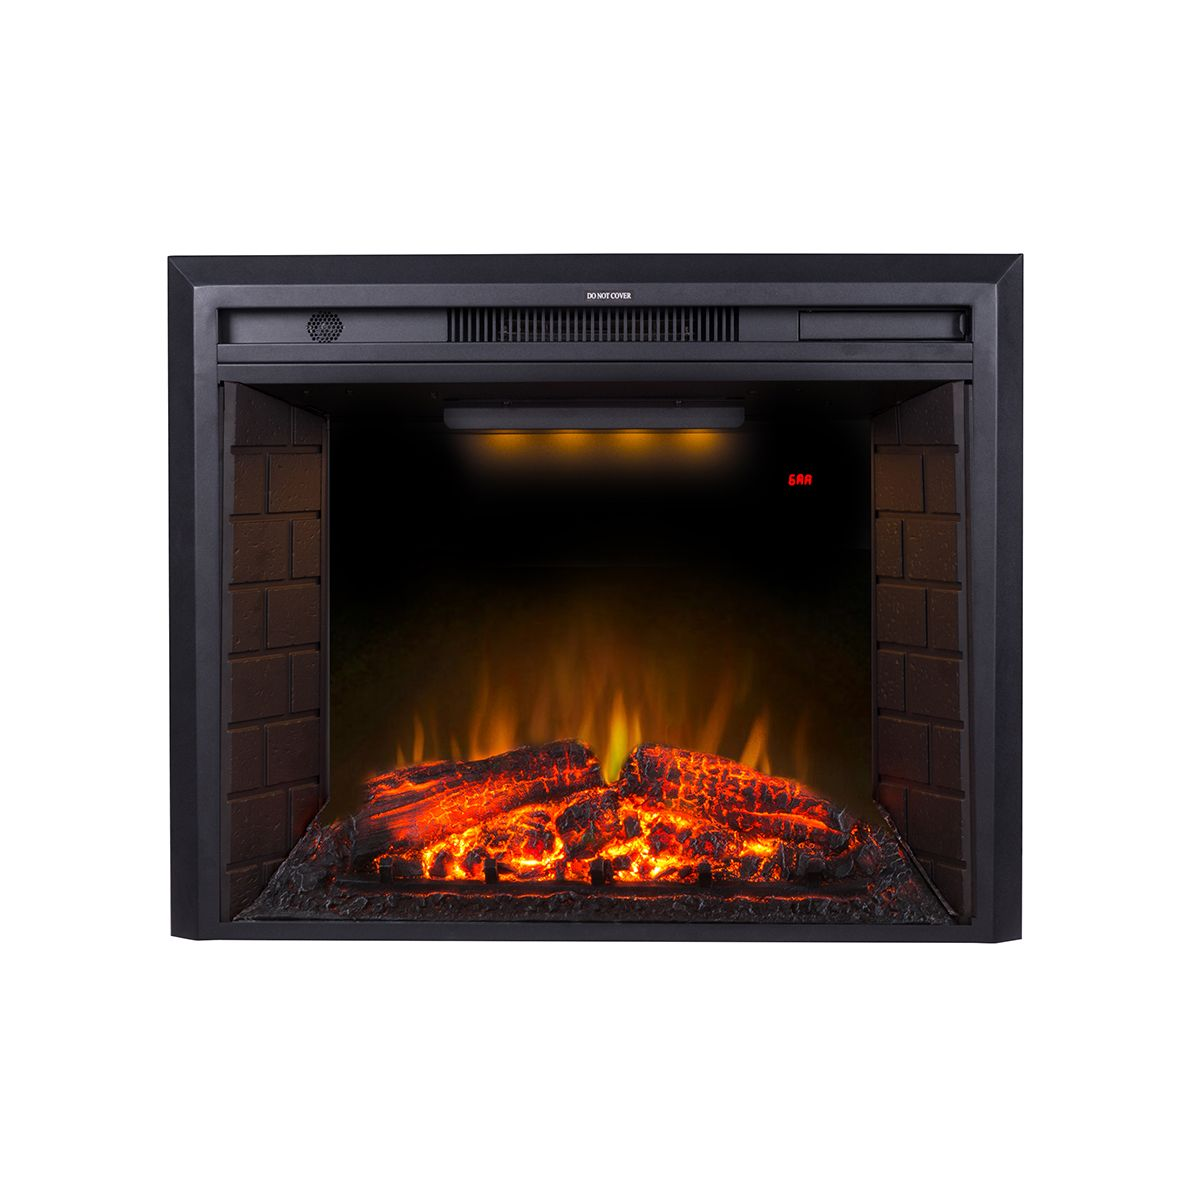 Hull Electric Fireplace Insert Recessed Electric Fireplace Electric Fireplace Insert Electric Fireplace